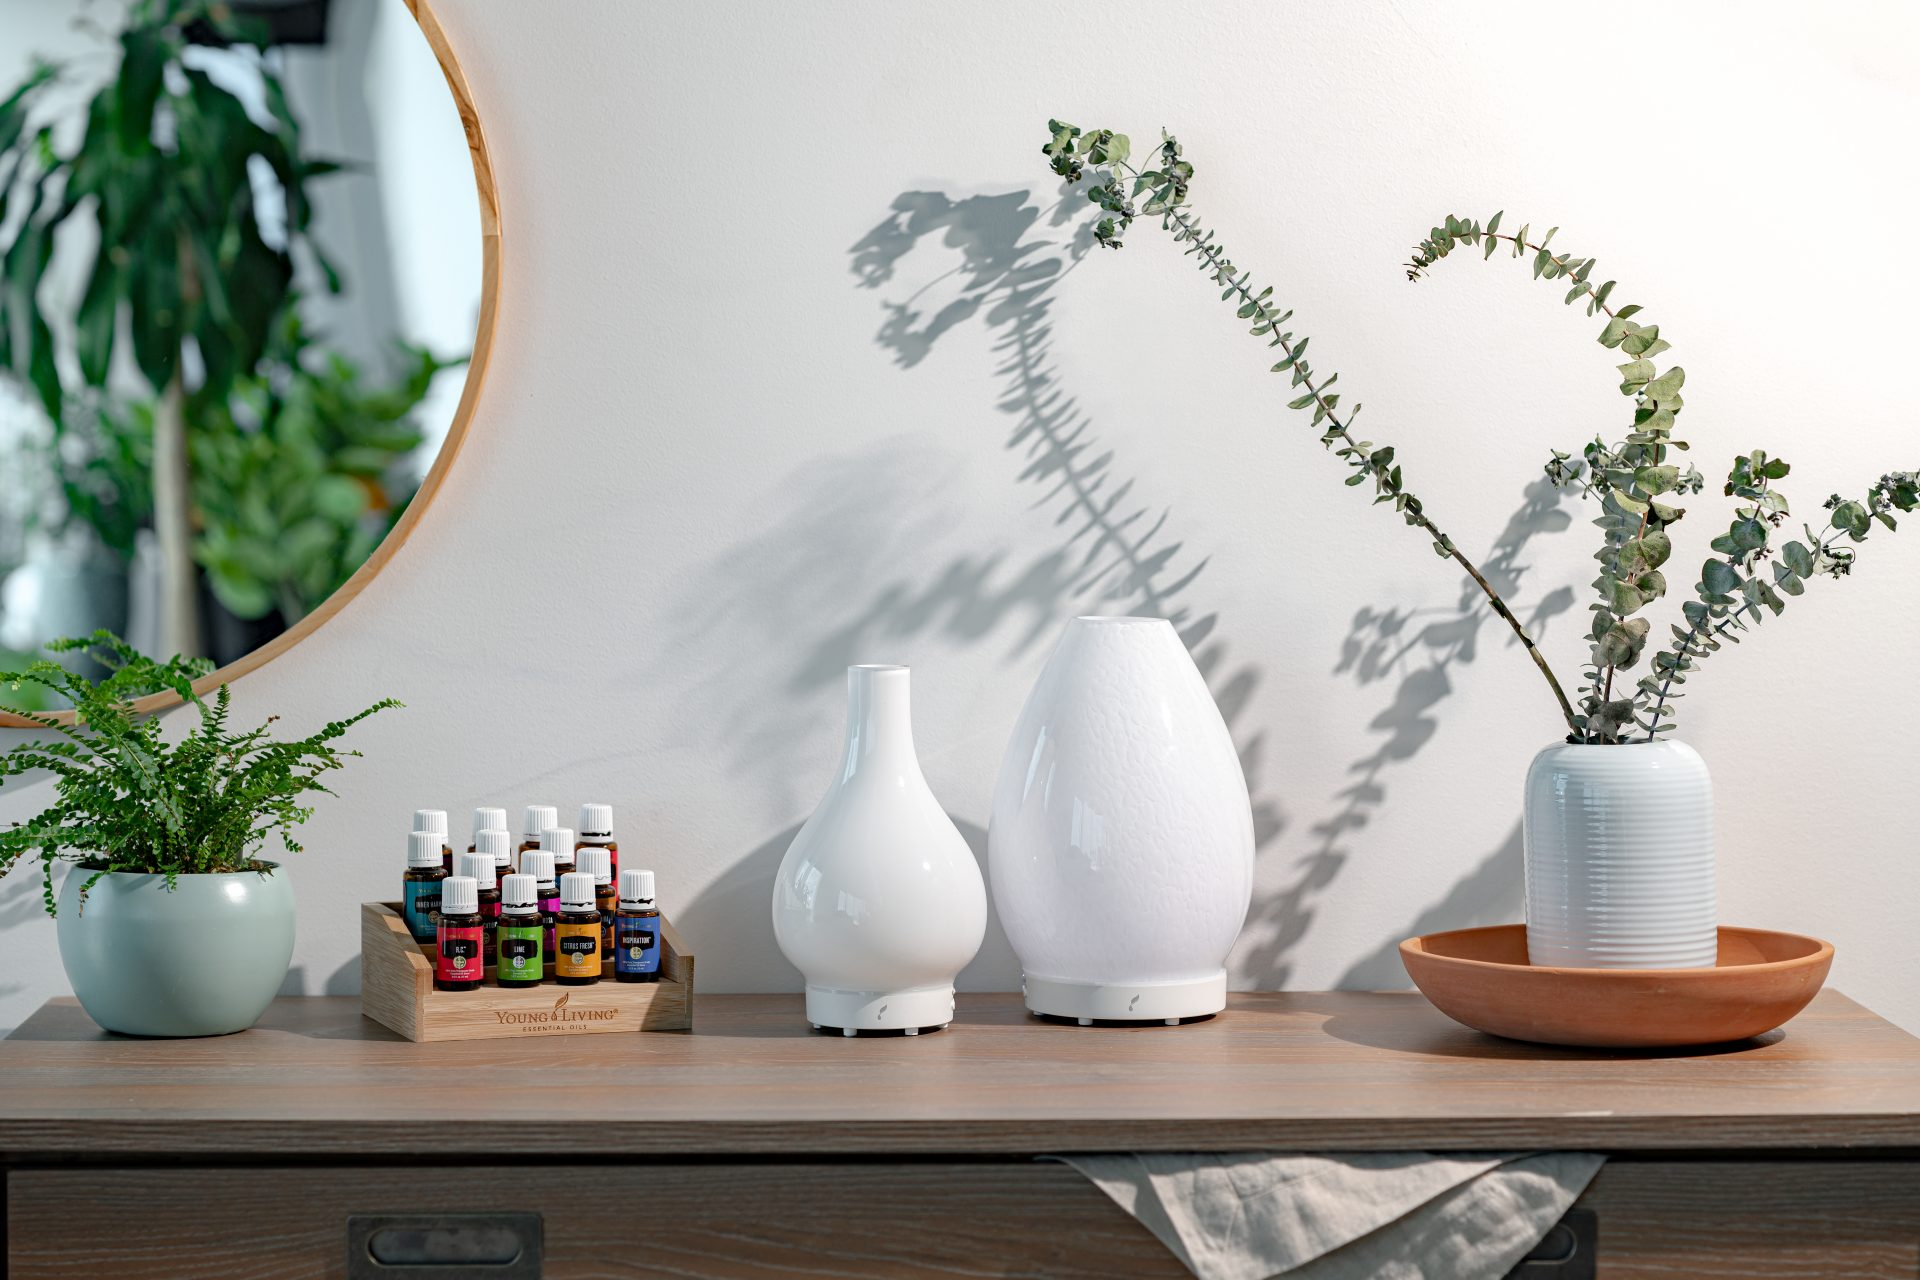 Young Living Essential oils Lustre and Lucia diffusers